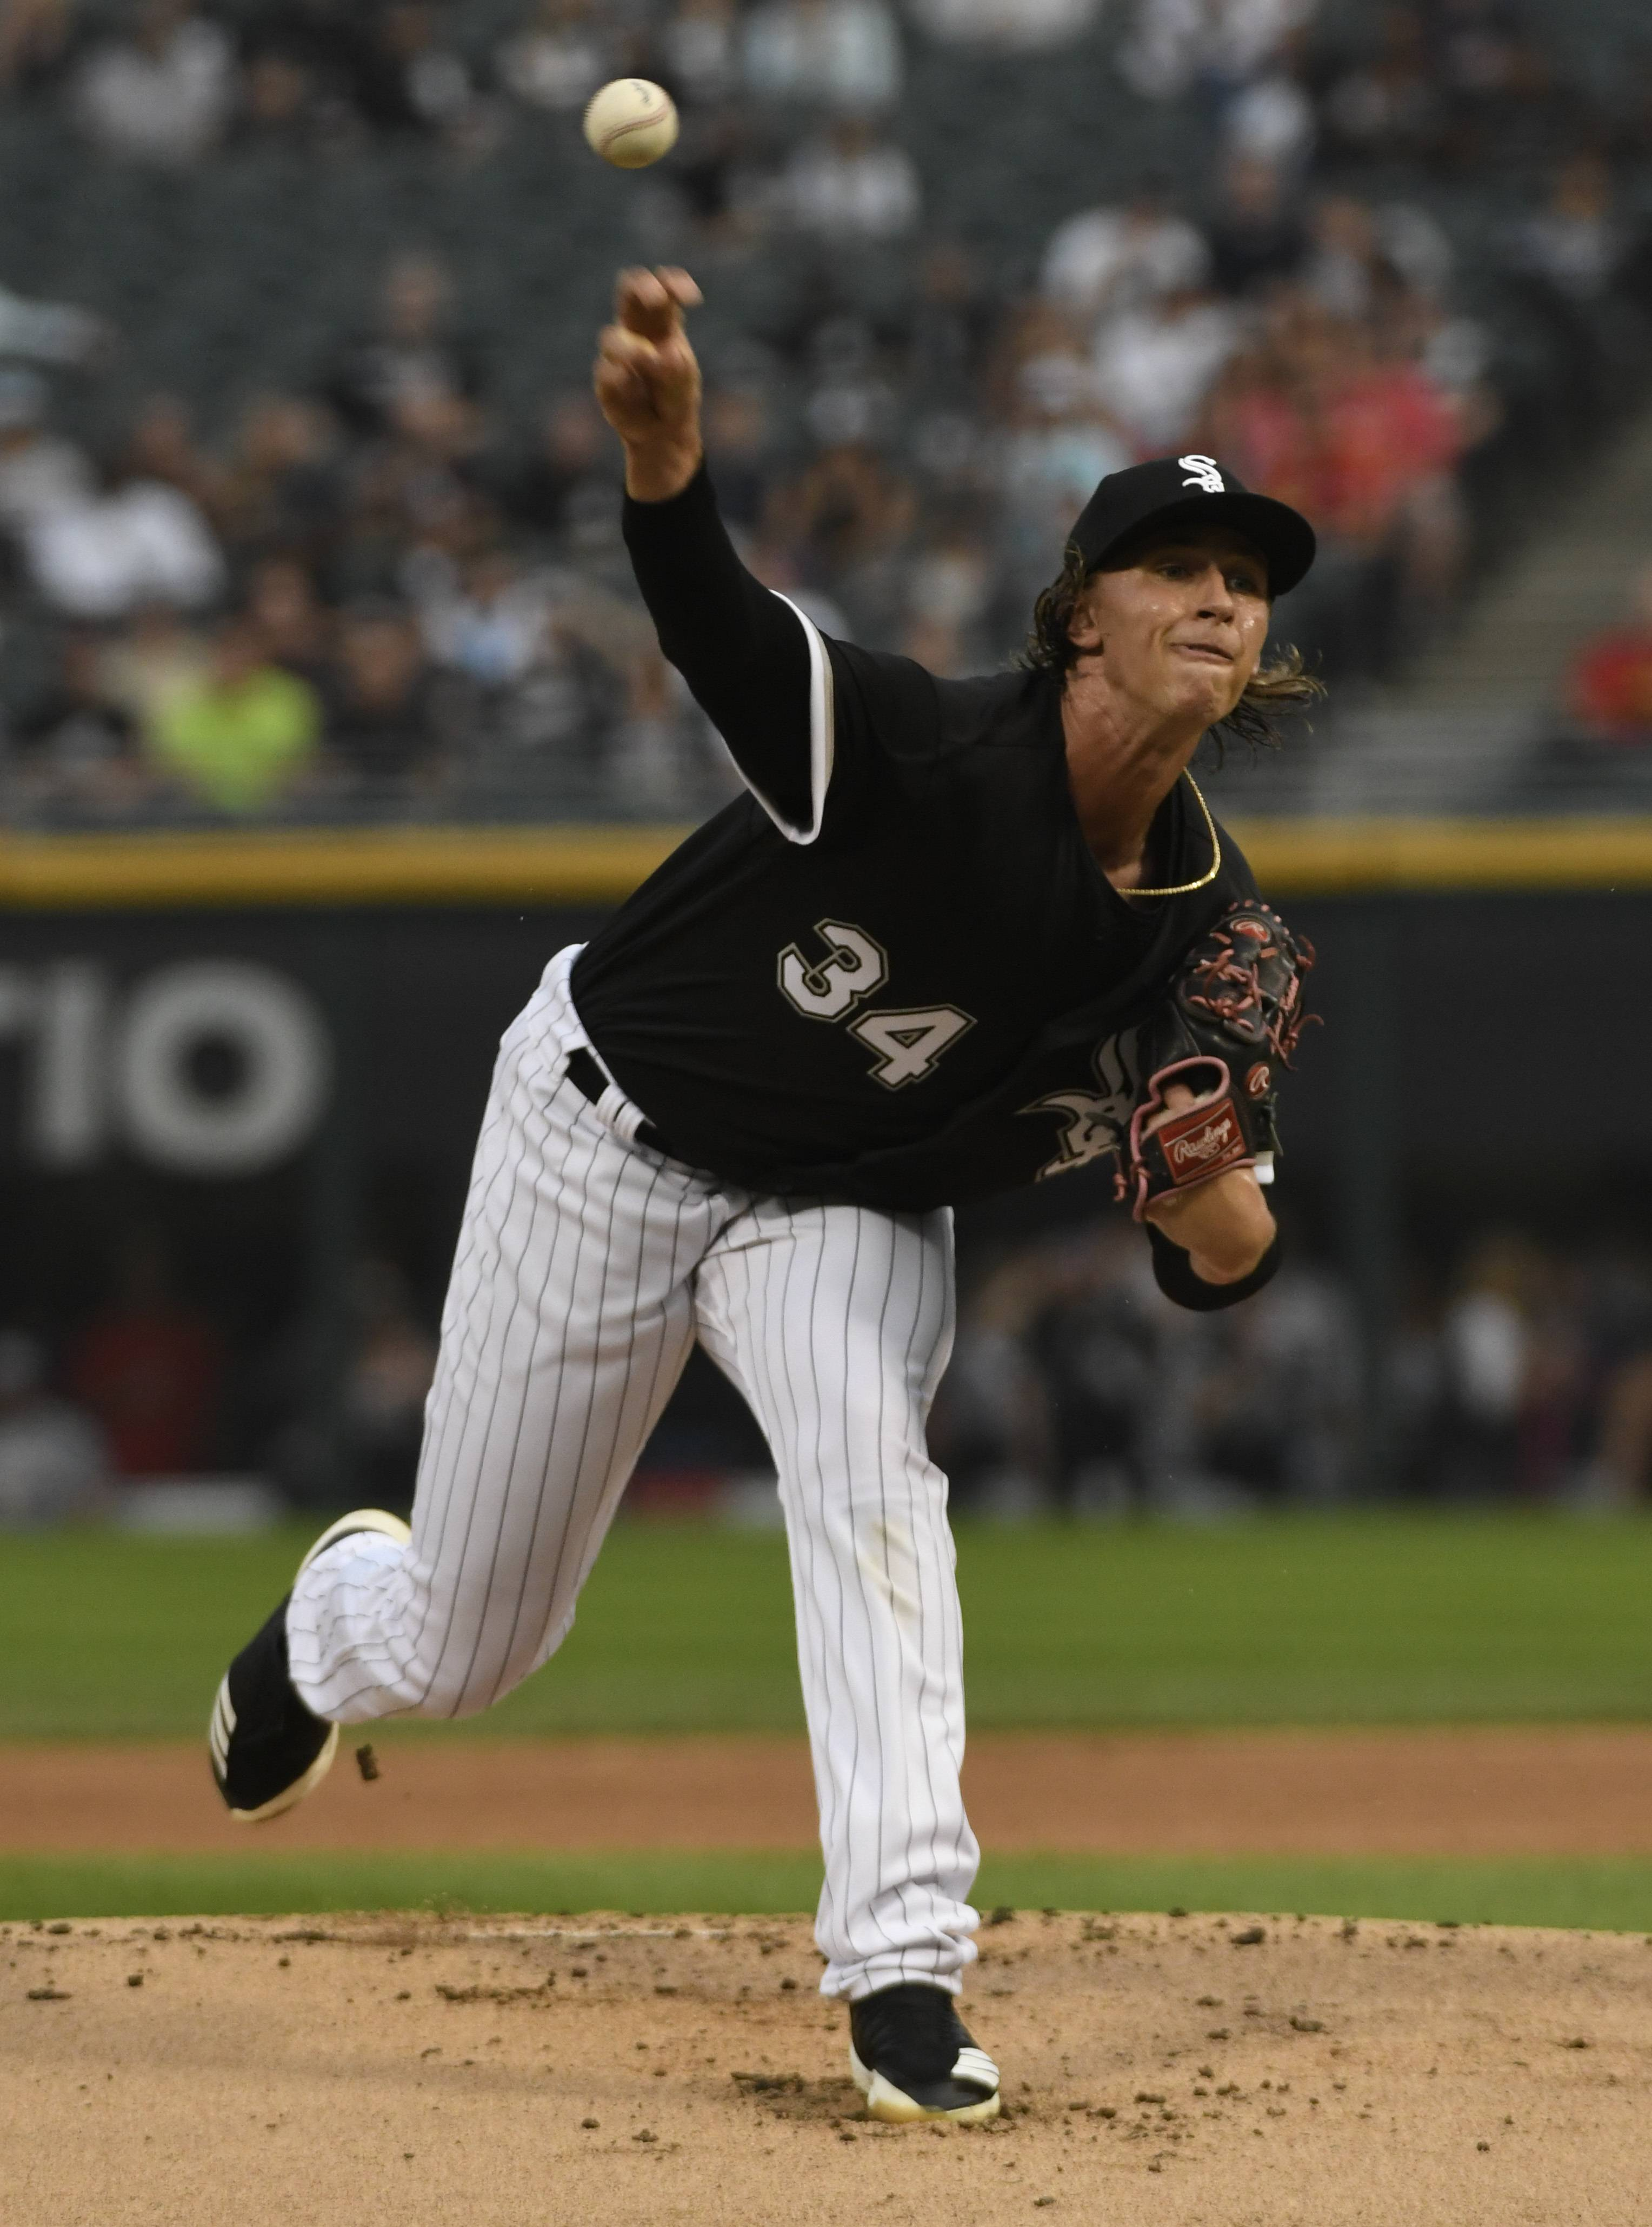 Chicago White Sox starting pitcher Michael Kopech (34) throws the ball against the Minnesota Twins during the first inning of a baseball game, Tuesday, Aug. 21, 2018, in Chicago. (AP Photo/David Banks)